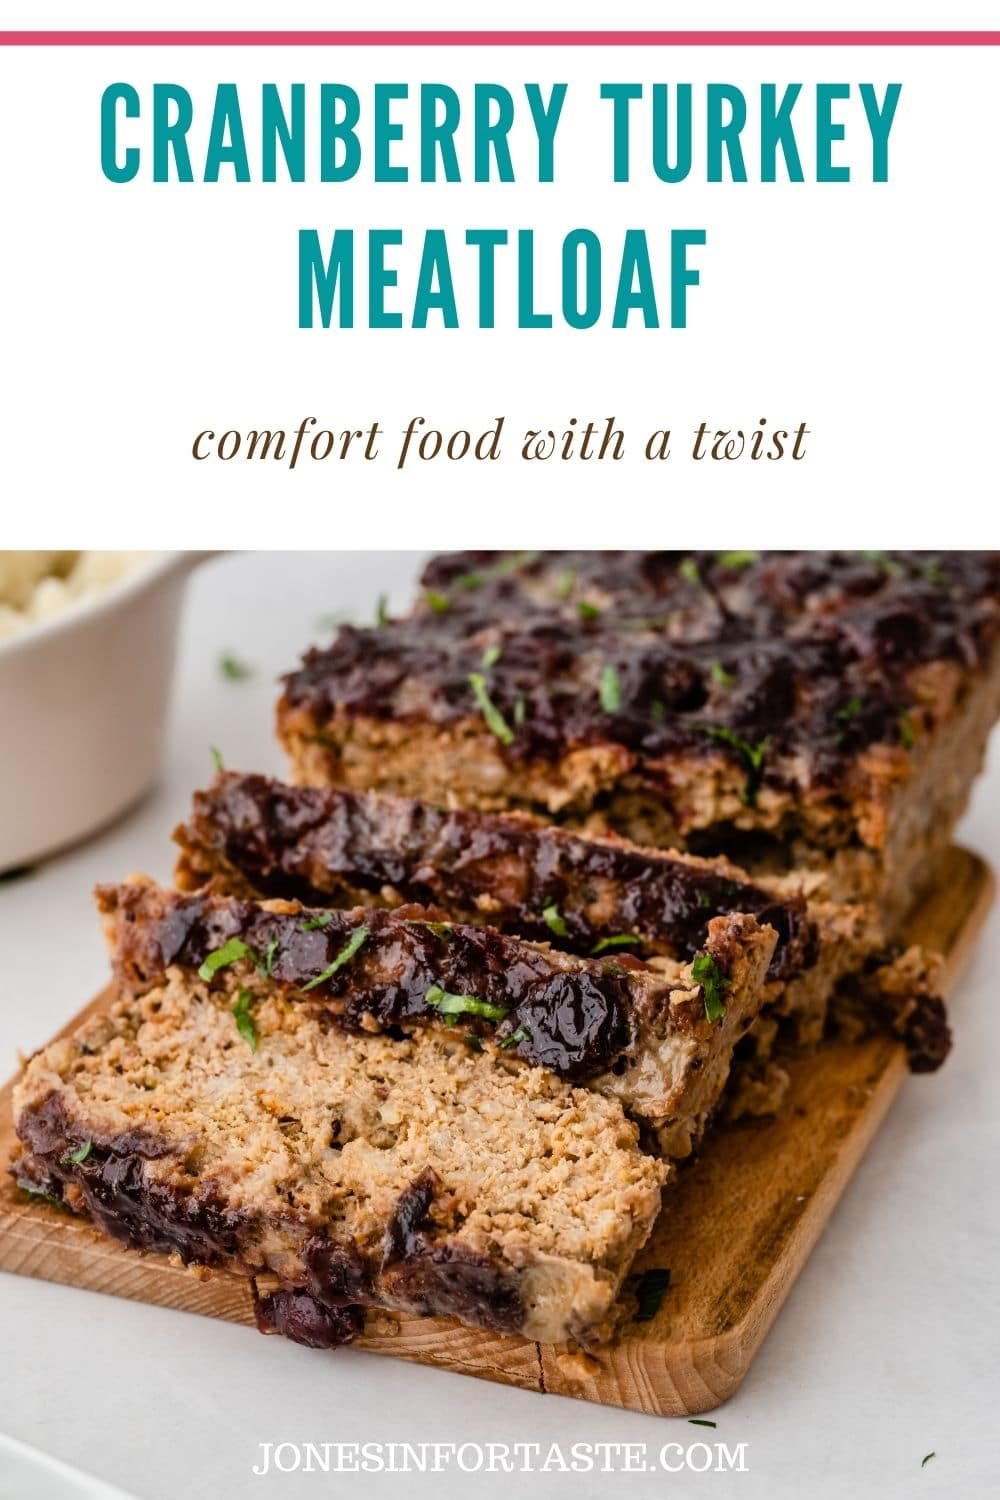 Cranberry Turkey Meatloaf is a lighter twist on classic meatloaf with a cranberry sauce glaze and a combination of ground turkey and oatmeal.